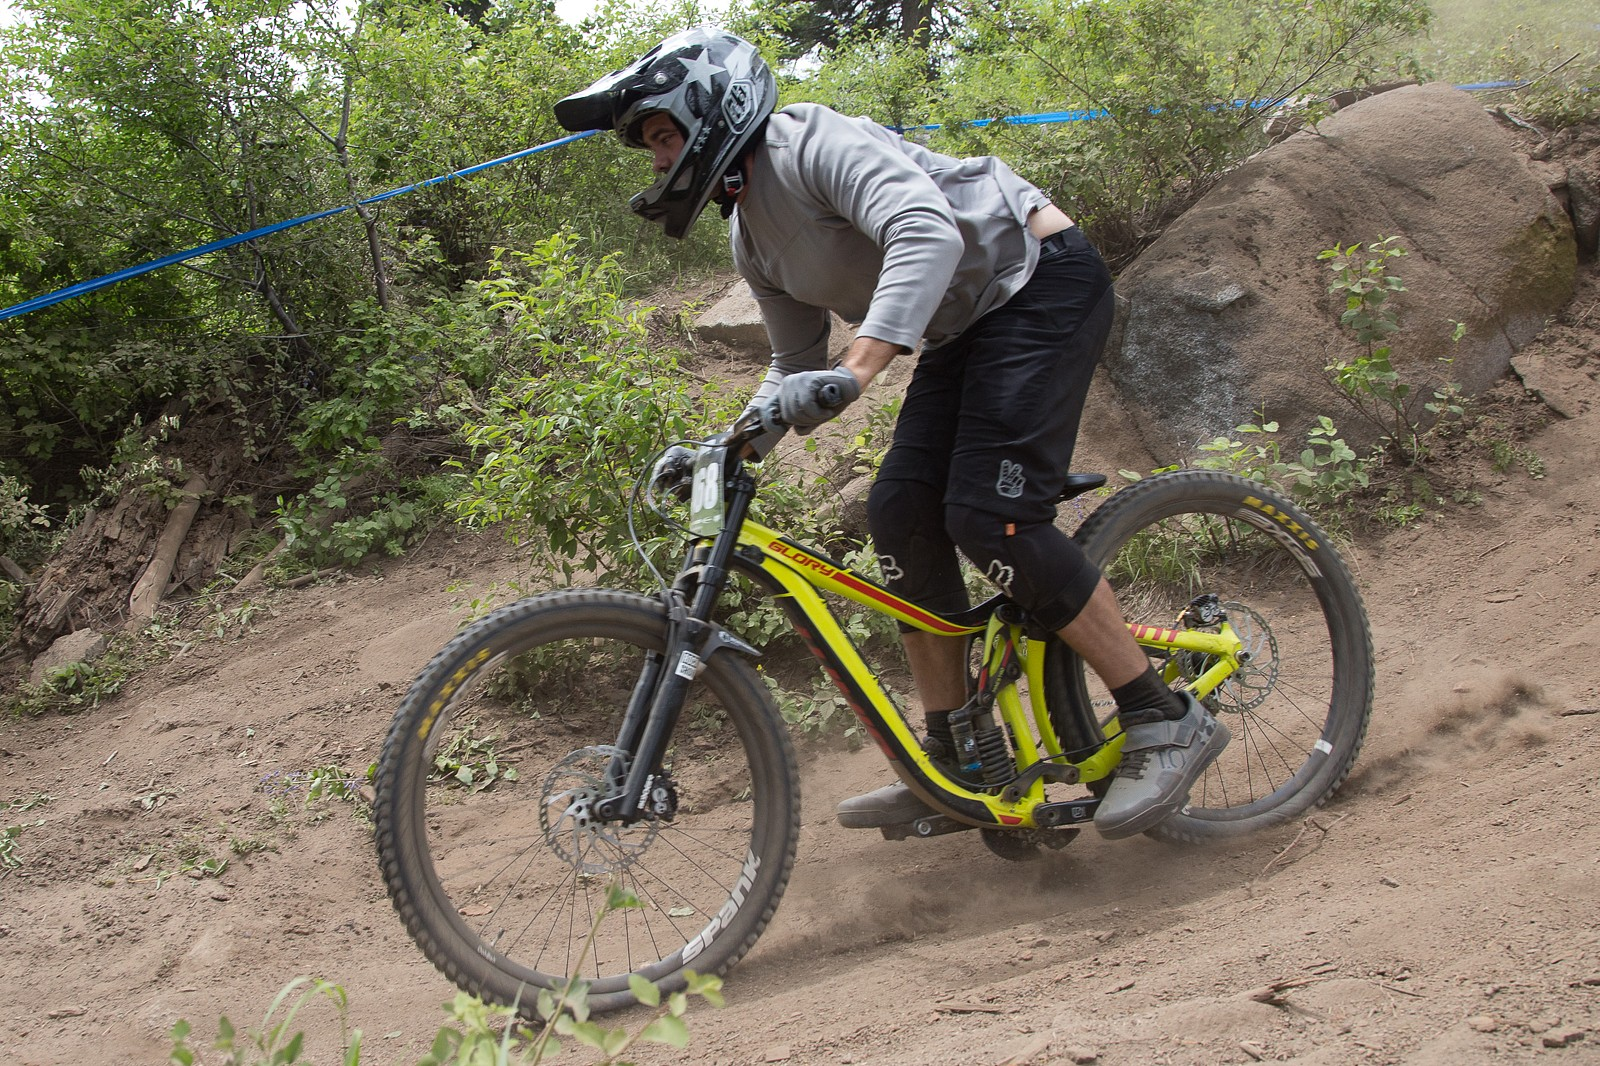 G-Out Project, Tamarack #USDH National-2 - G-Out Project - Tamarack NW Cup / #USDH - Mountain Biking Pictures - Vital MTB